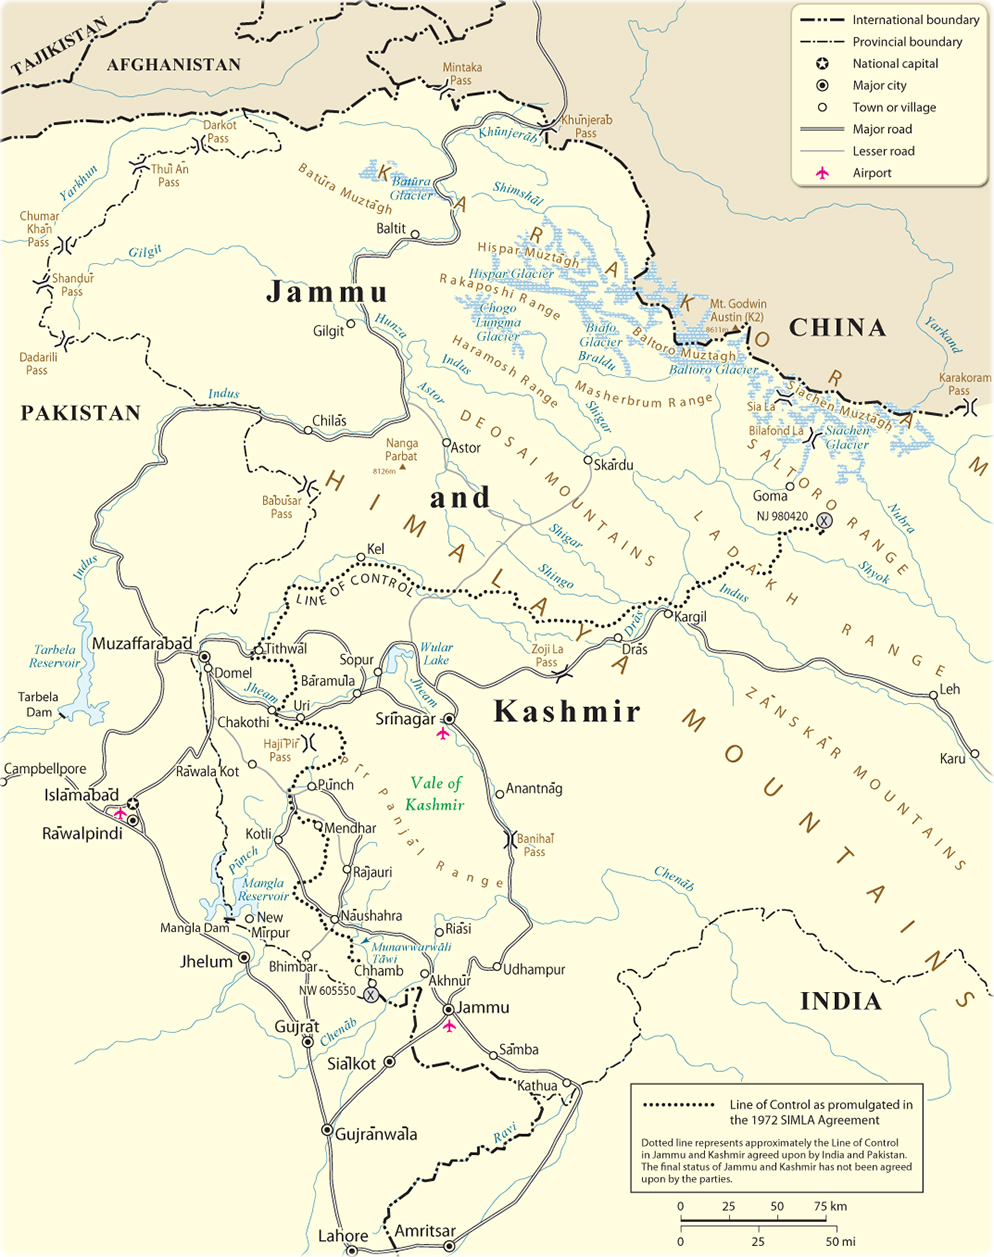 Kashmir and Jammu - Map of the Area